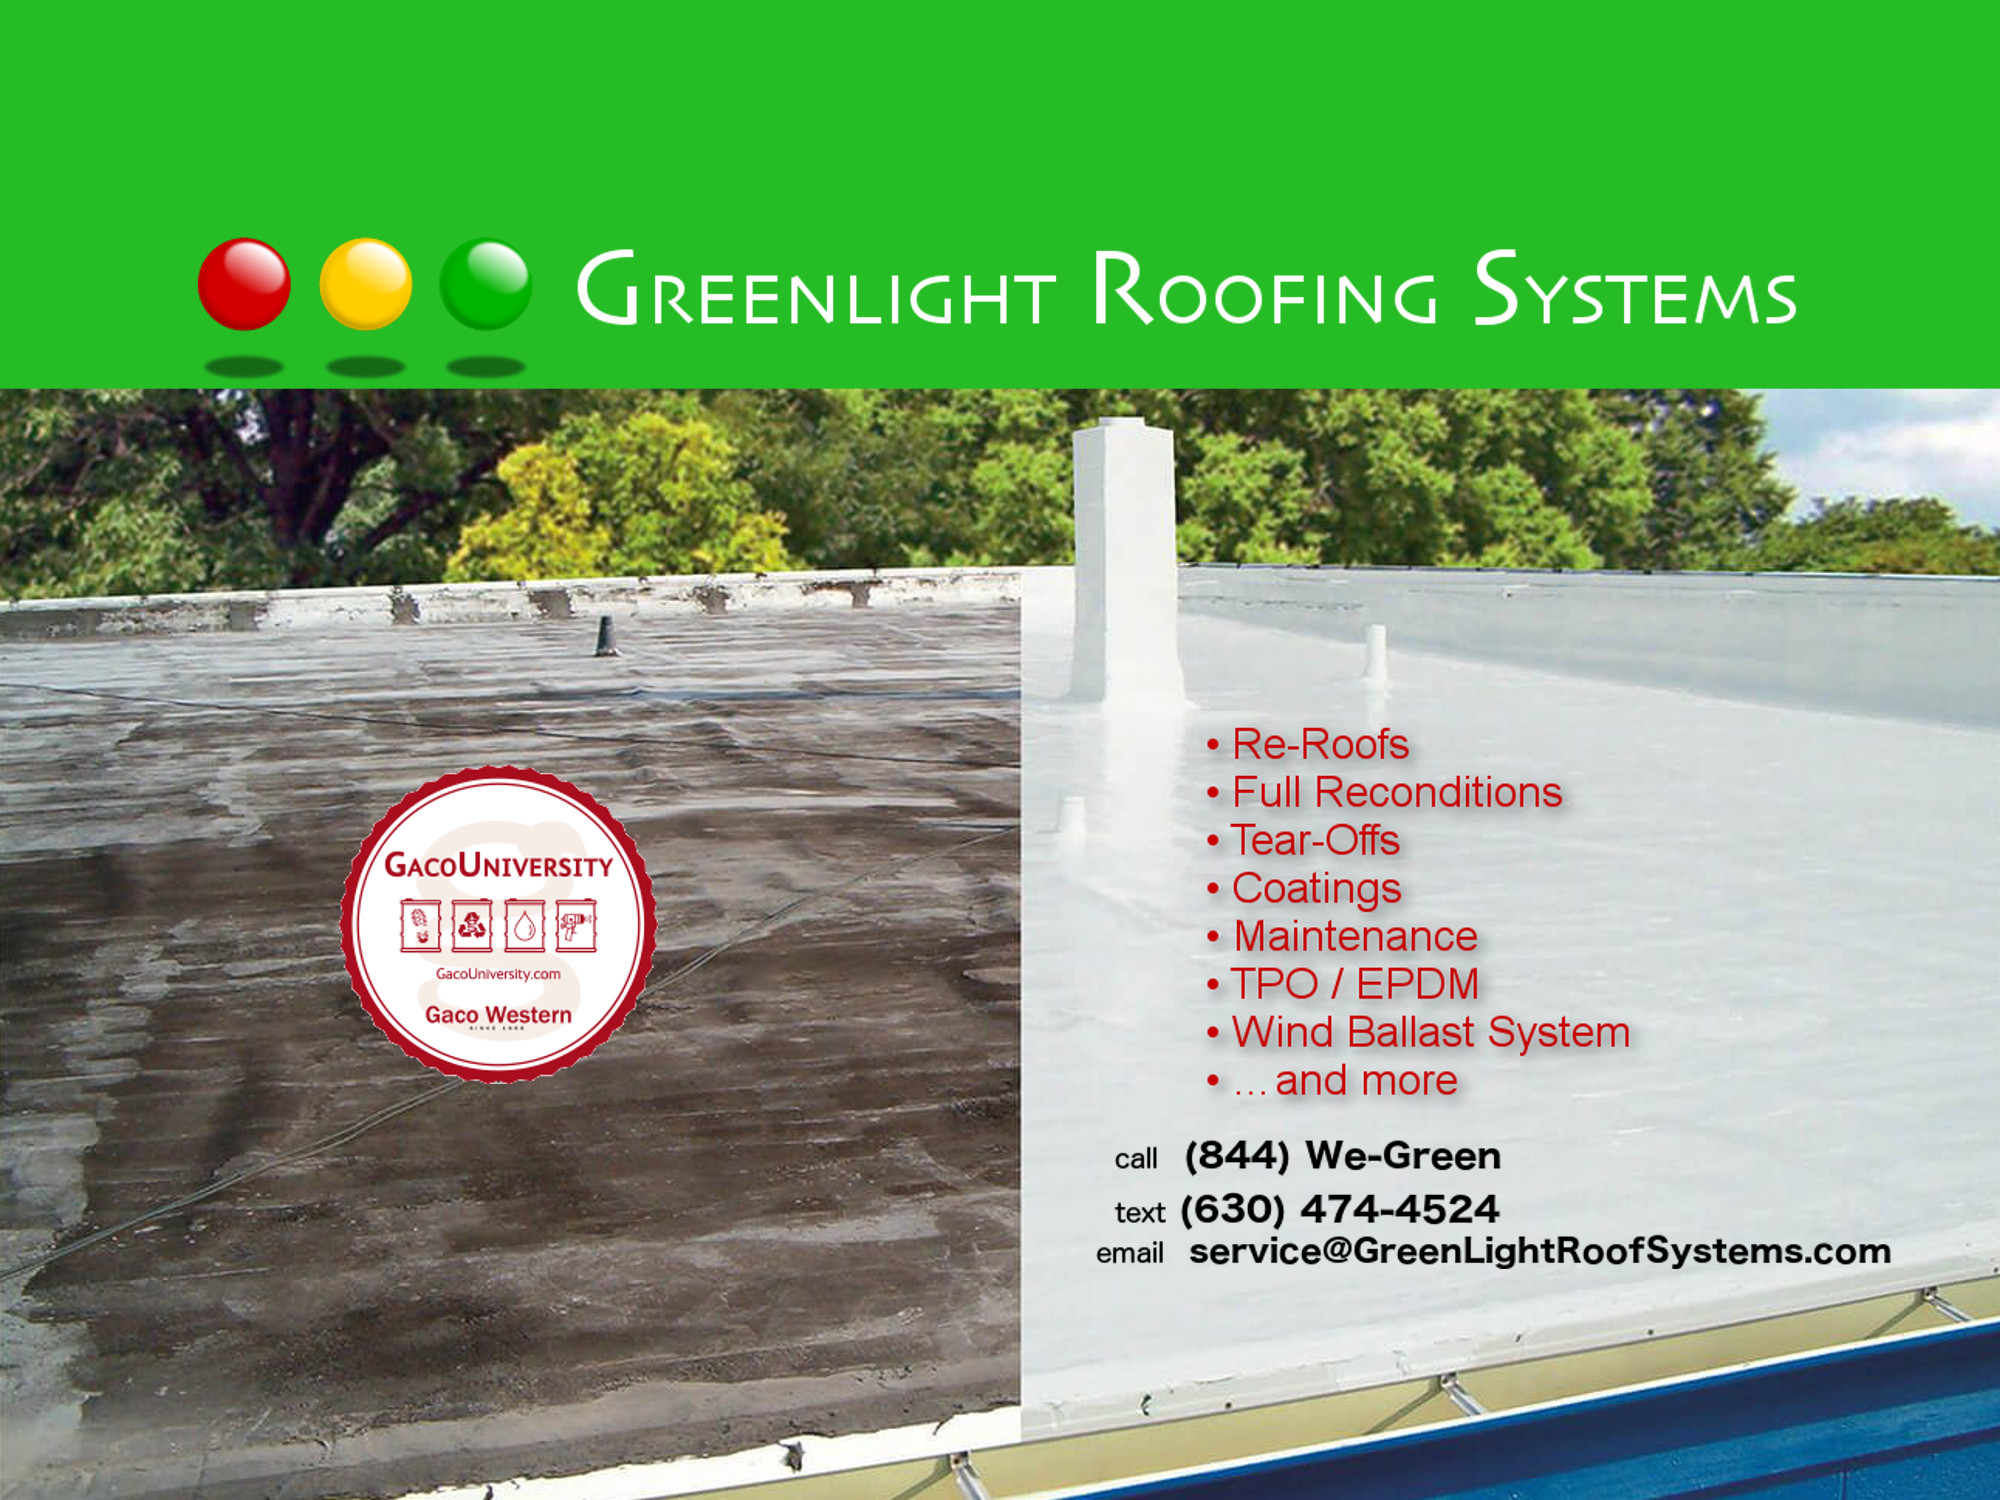 Greenlight Roofing Systems